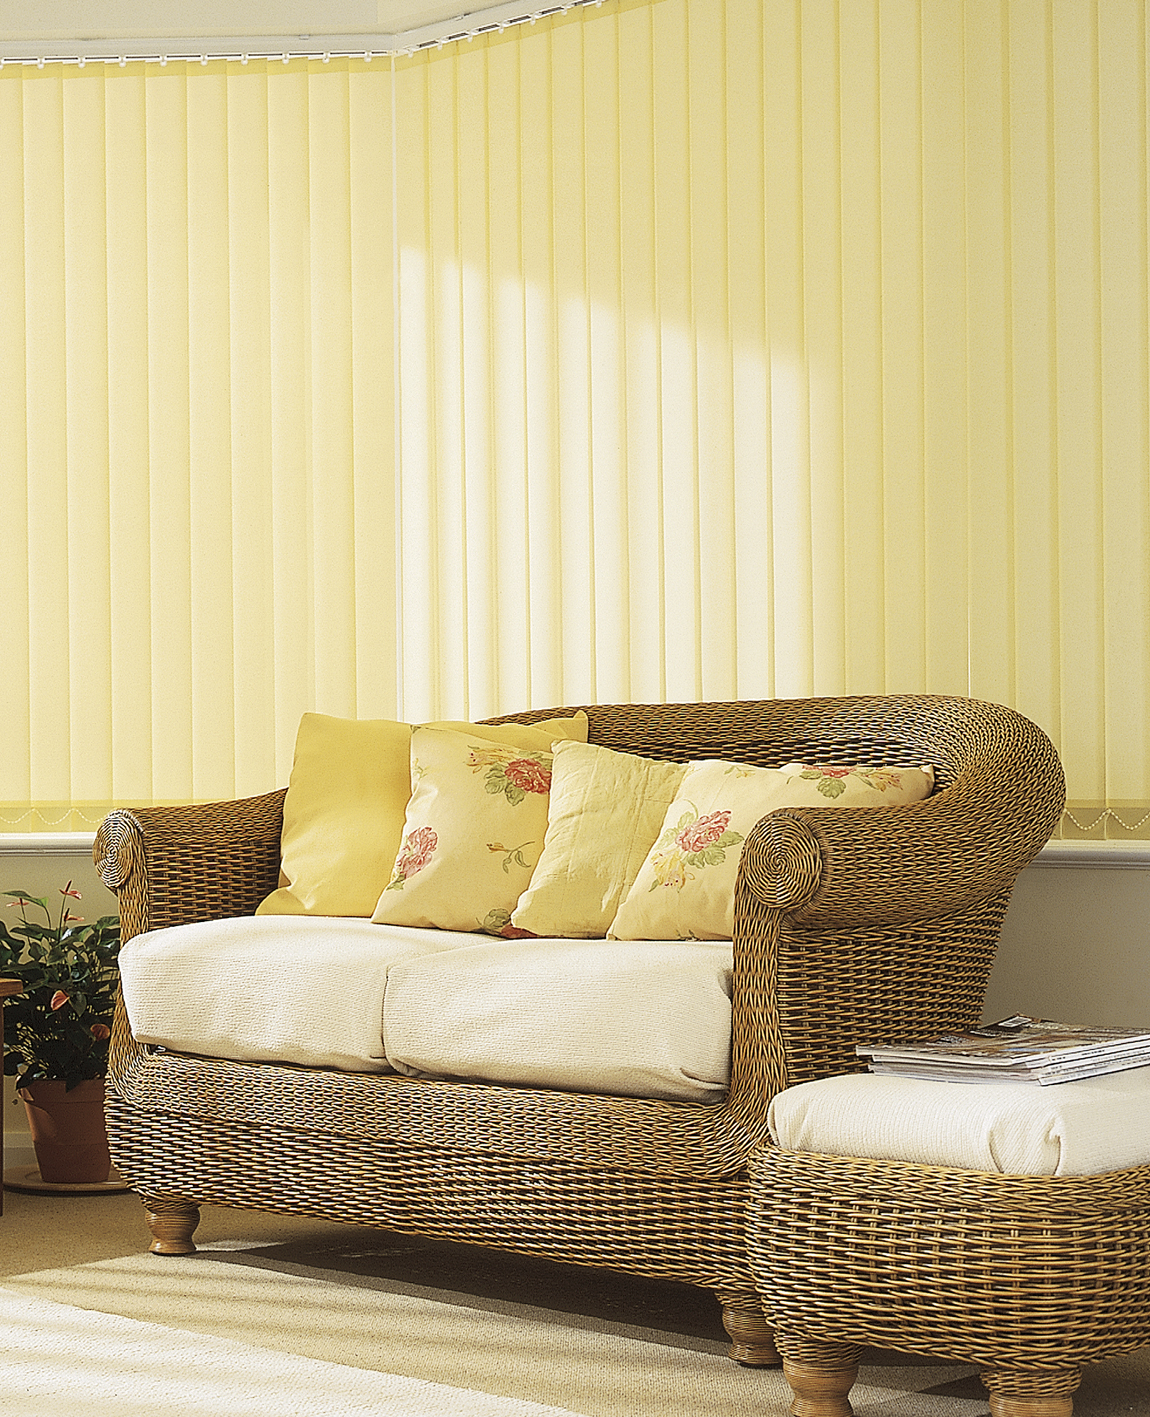 Blackout vertical Blinds, PVC Vertical Blinds, Wipe Clean Vertical